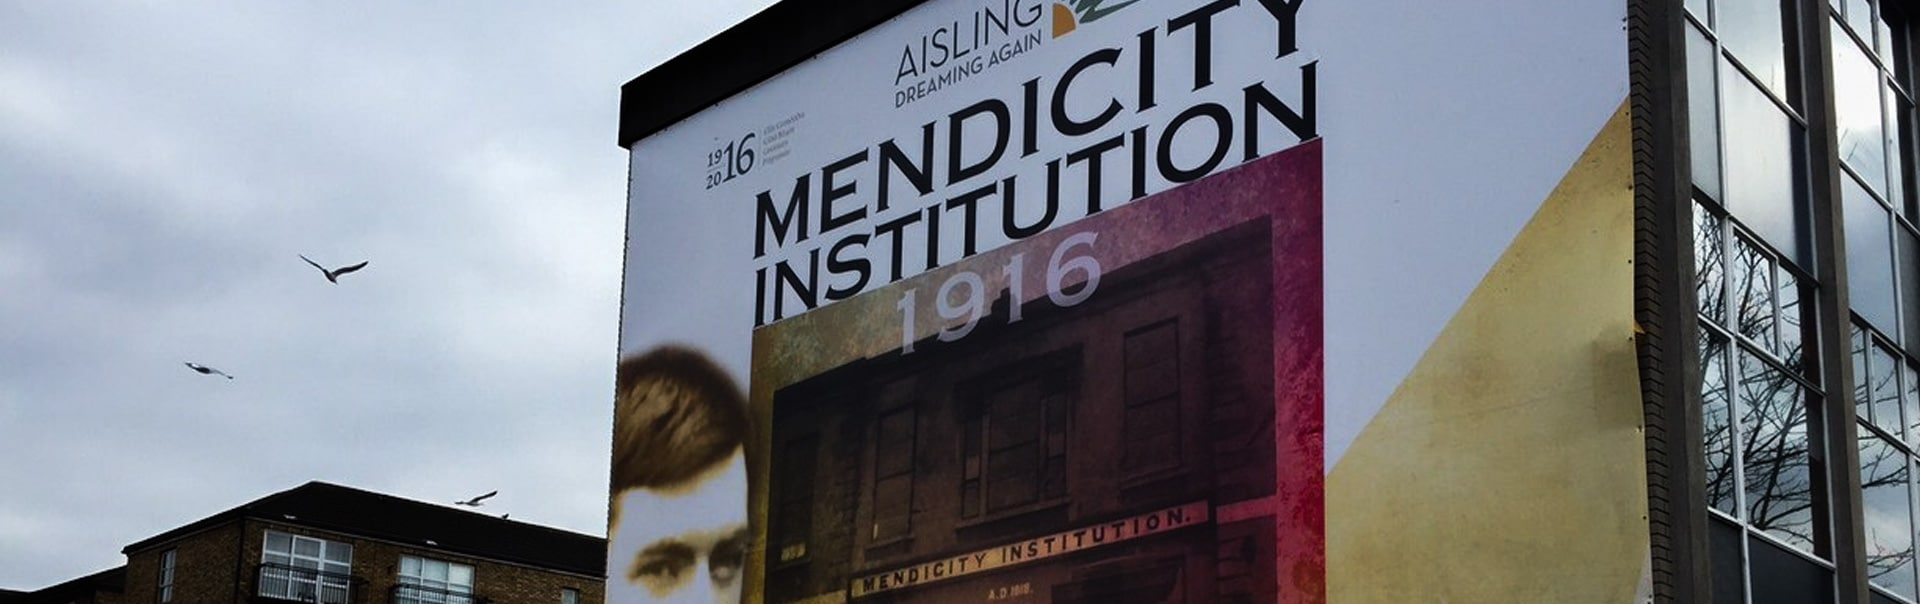 To mark the 1916 Easter Rising we wrapped the Mendicity Institution's facade with a full colour printed banner